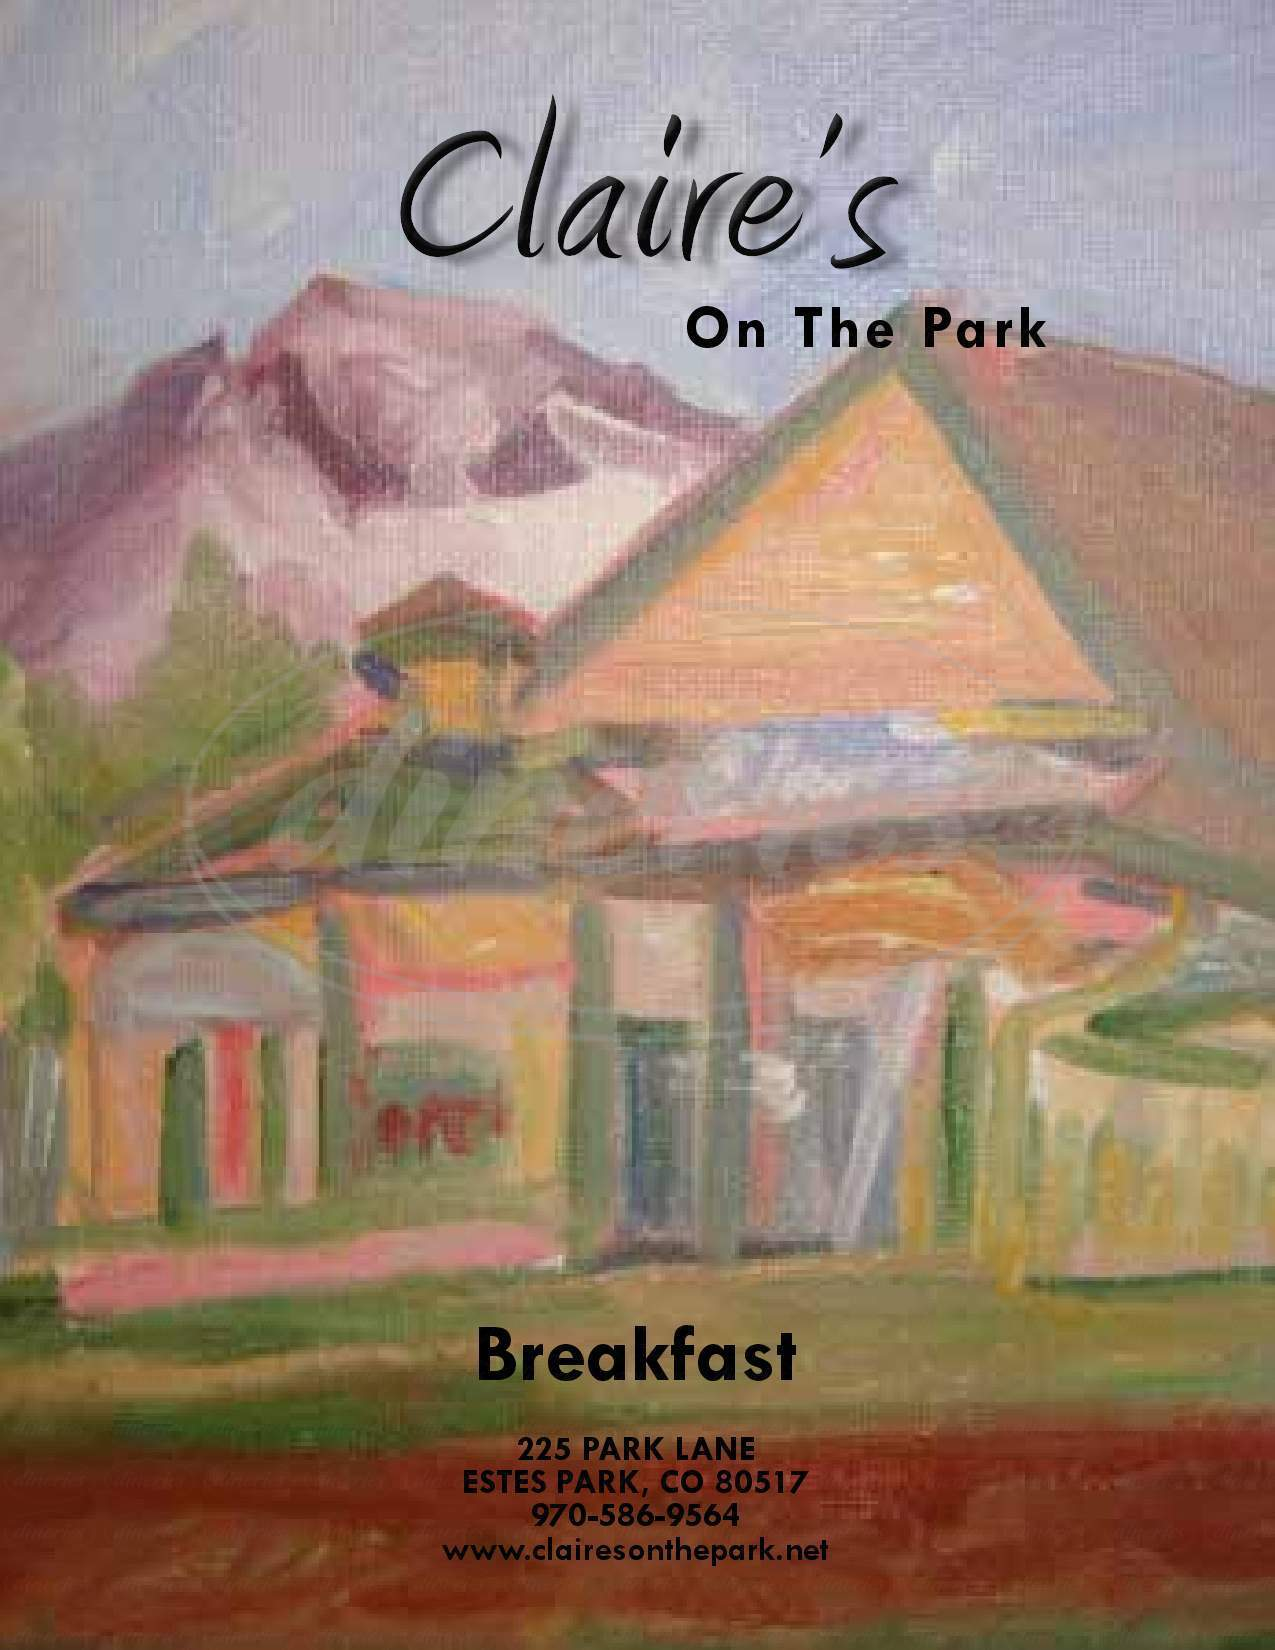 menu for Claire's on the Park